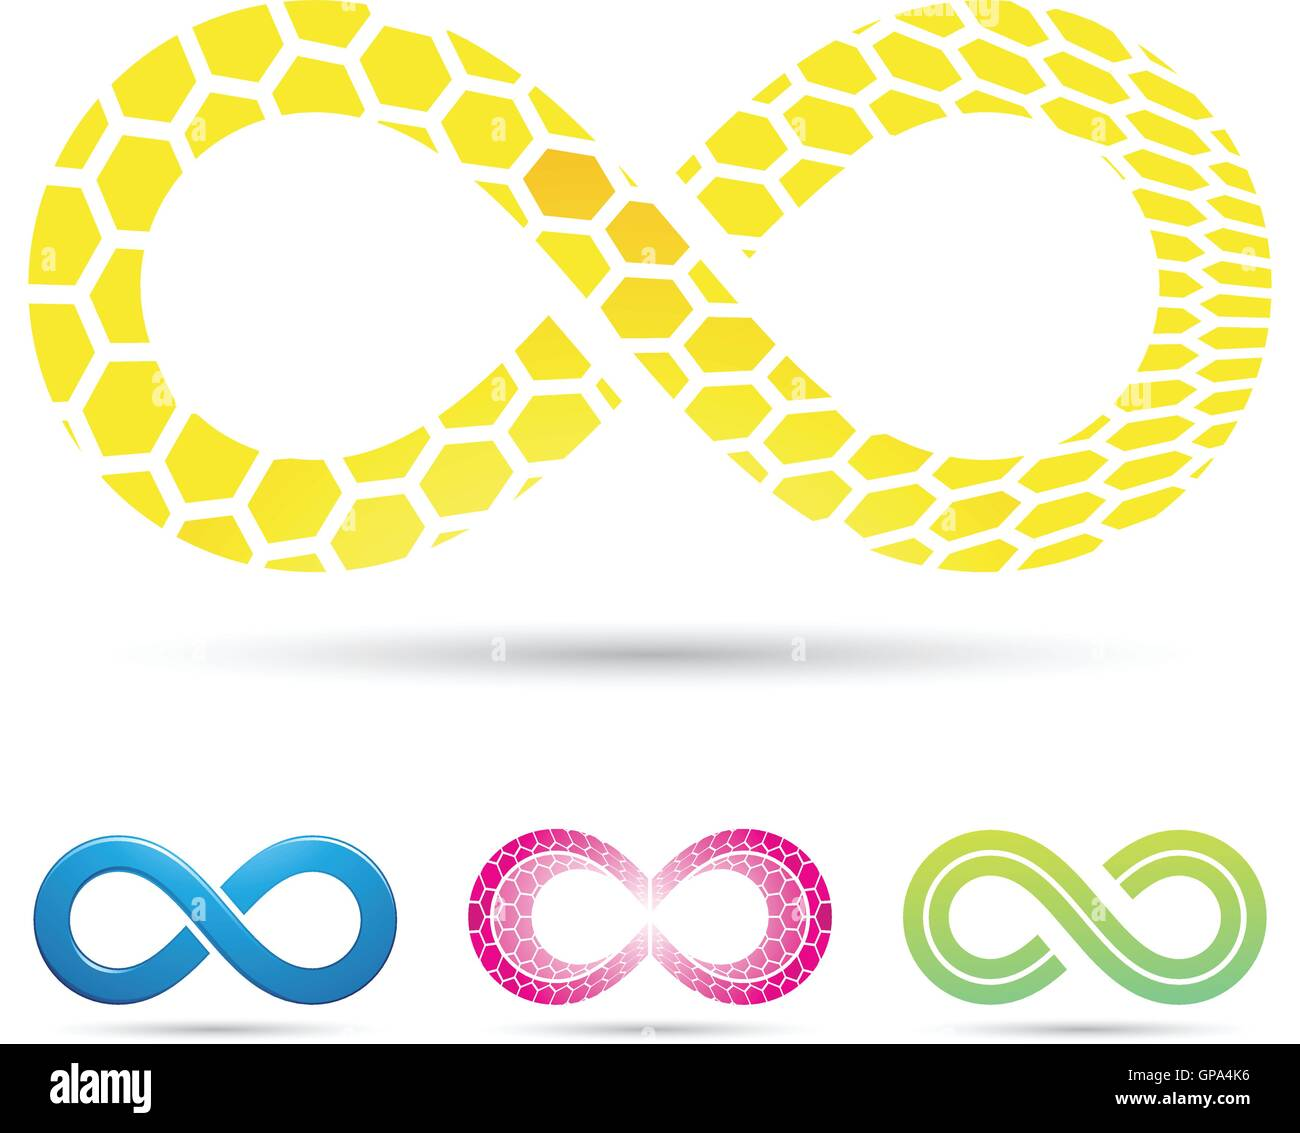 Vector Illustration Of Infinity Symbols With Honeycomb Pattern Stock